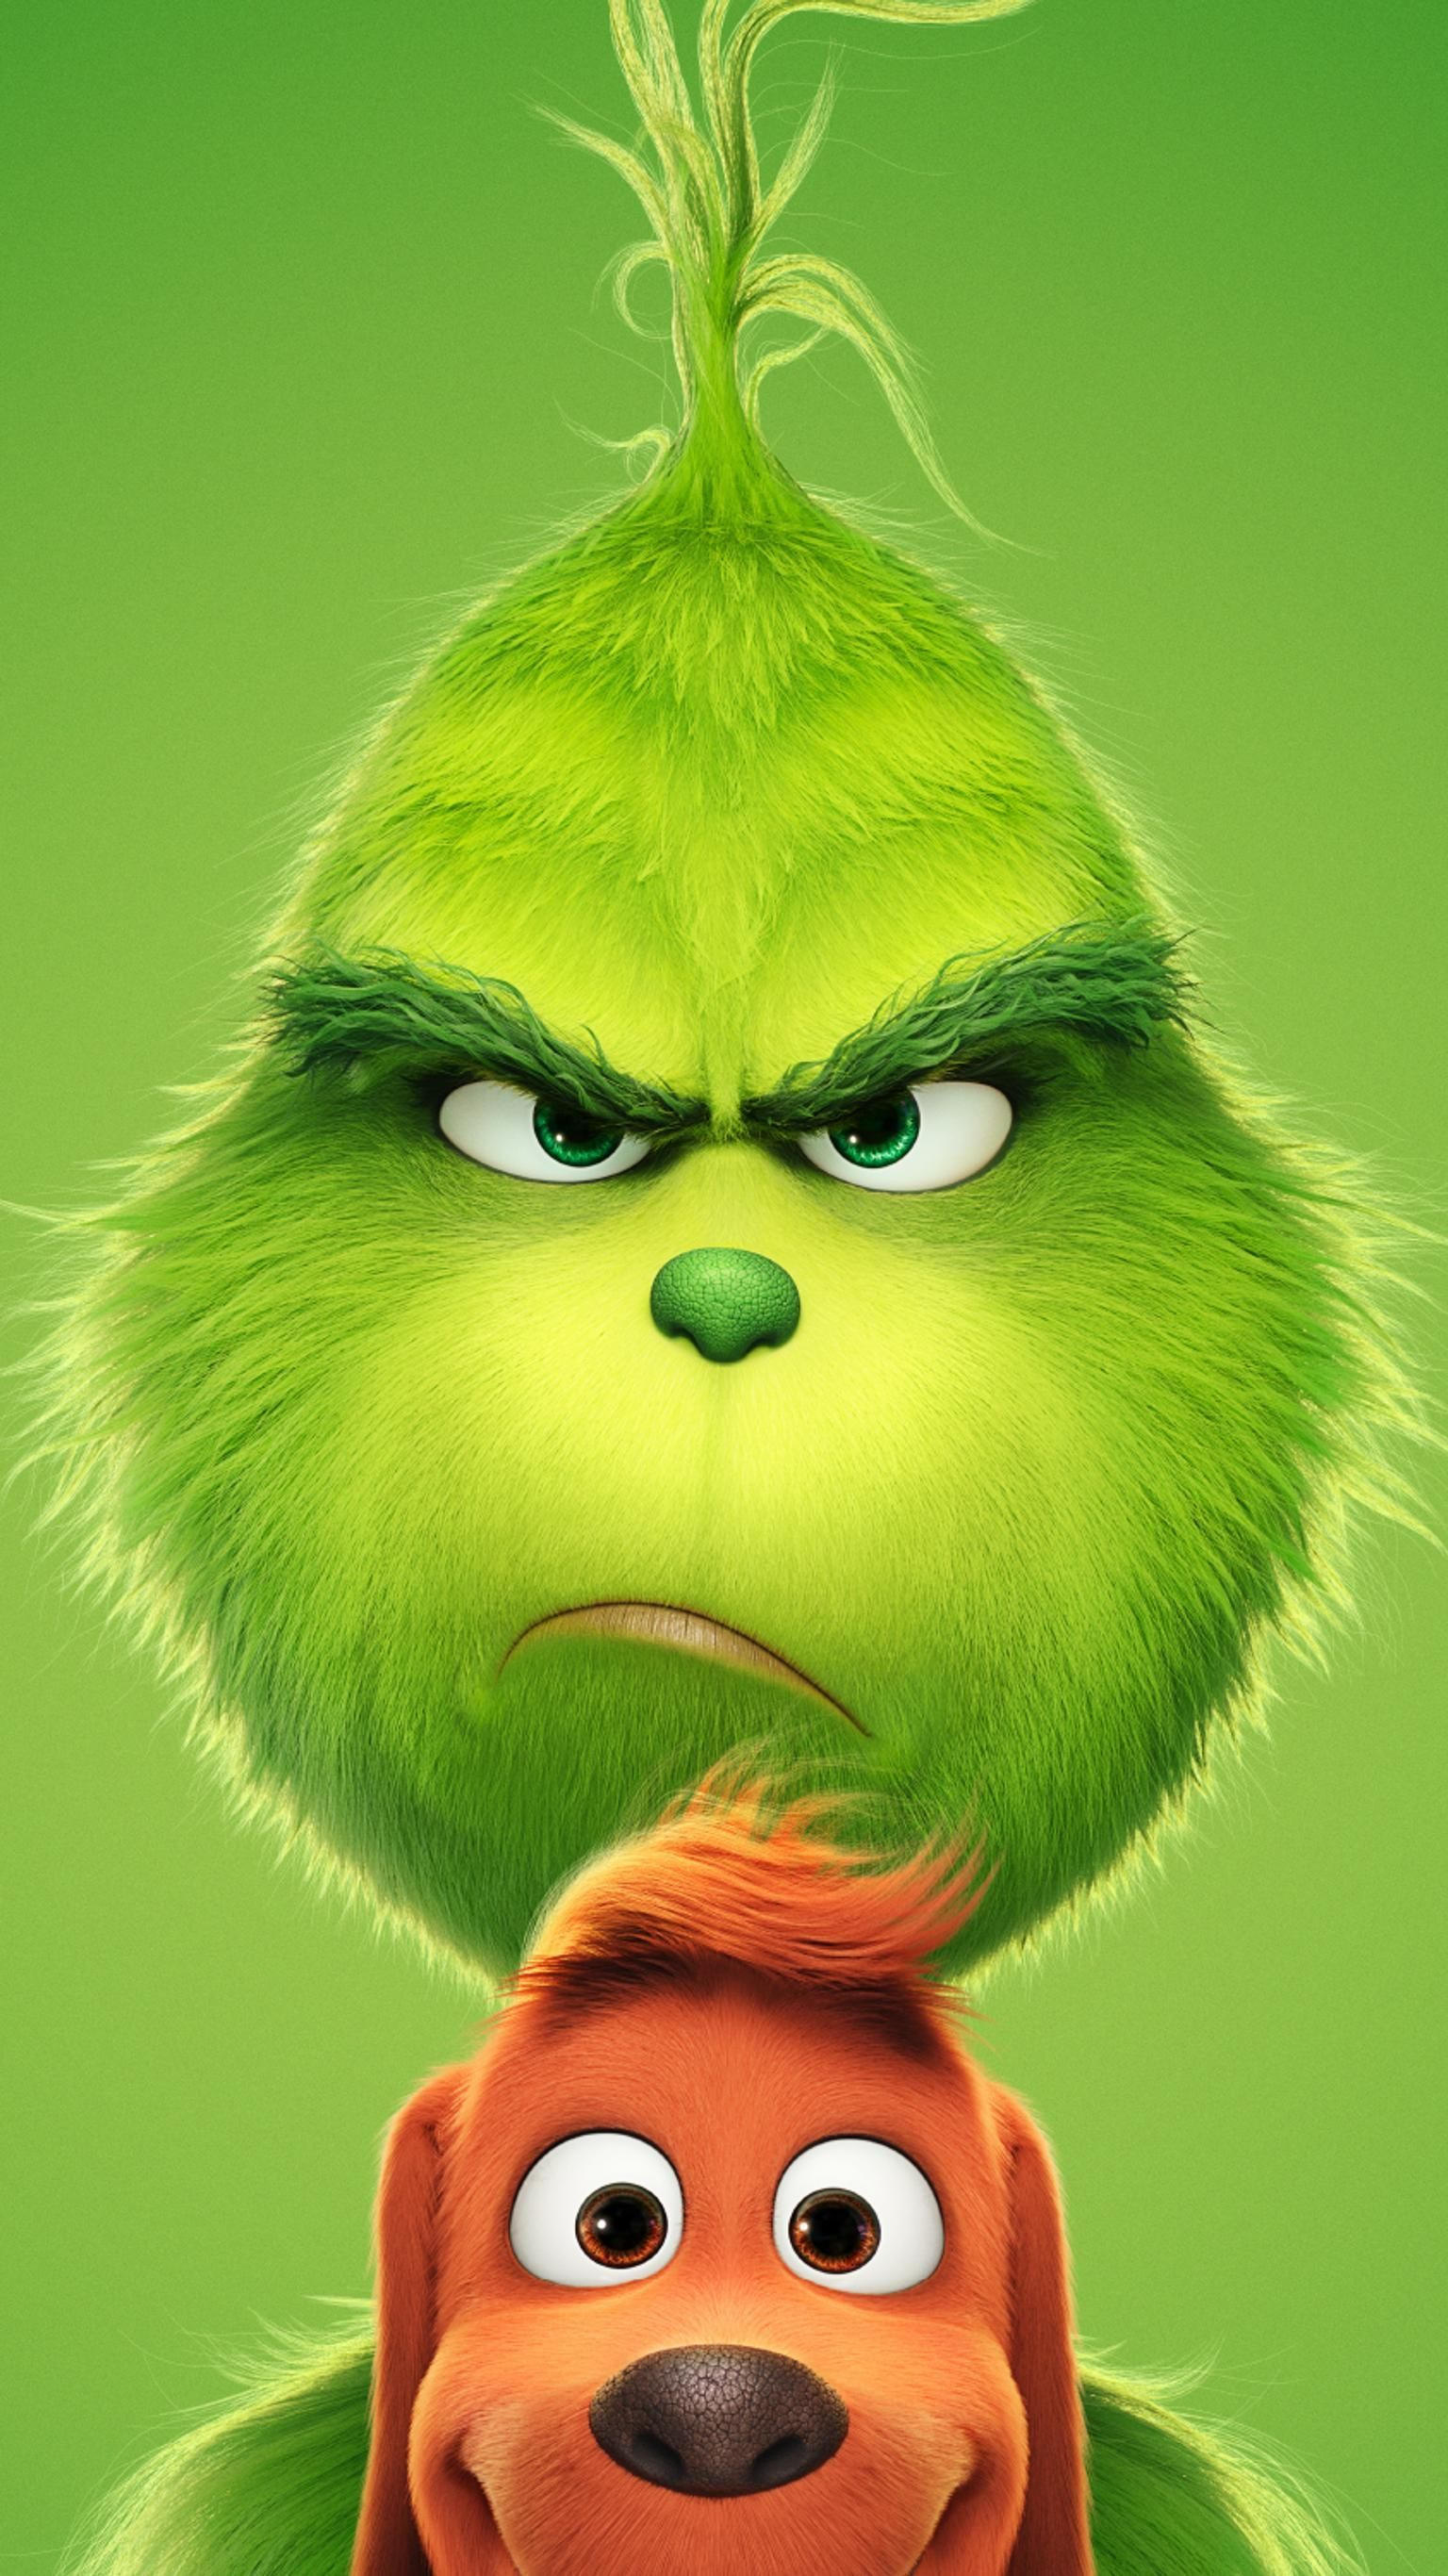 1536x2732 The Grinch (2018) Phone Wallpaper in 2019 | Wallpapers | Grinch, The ...